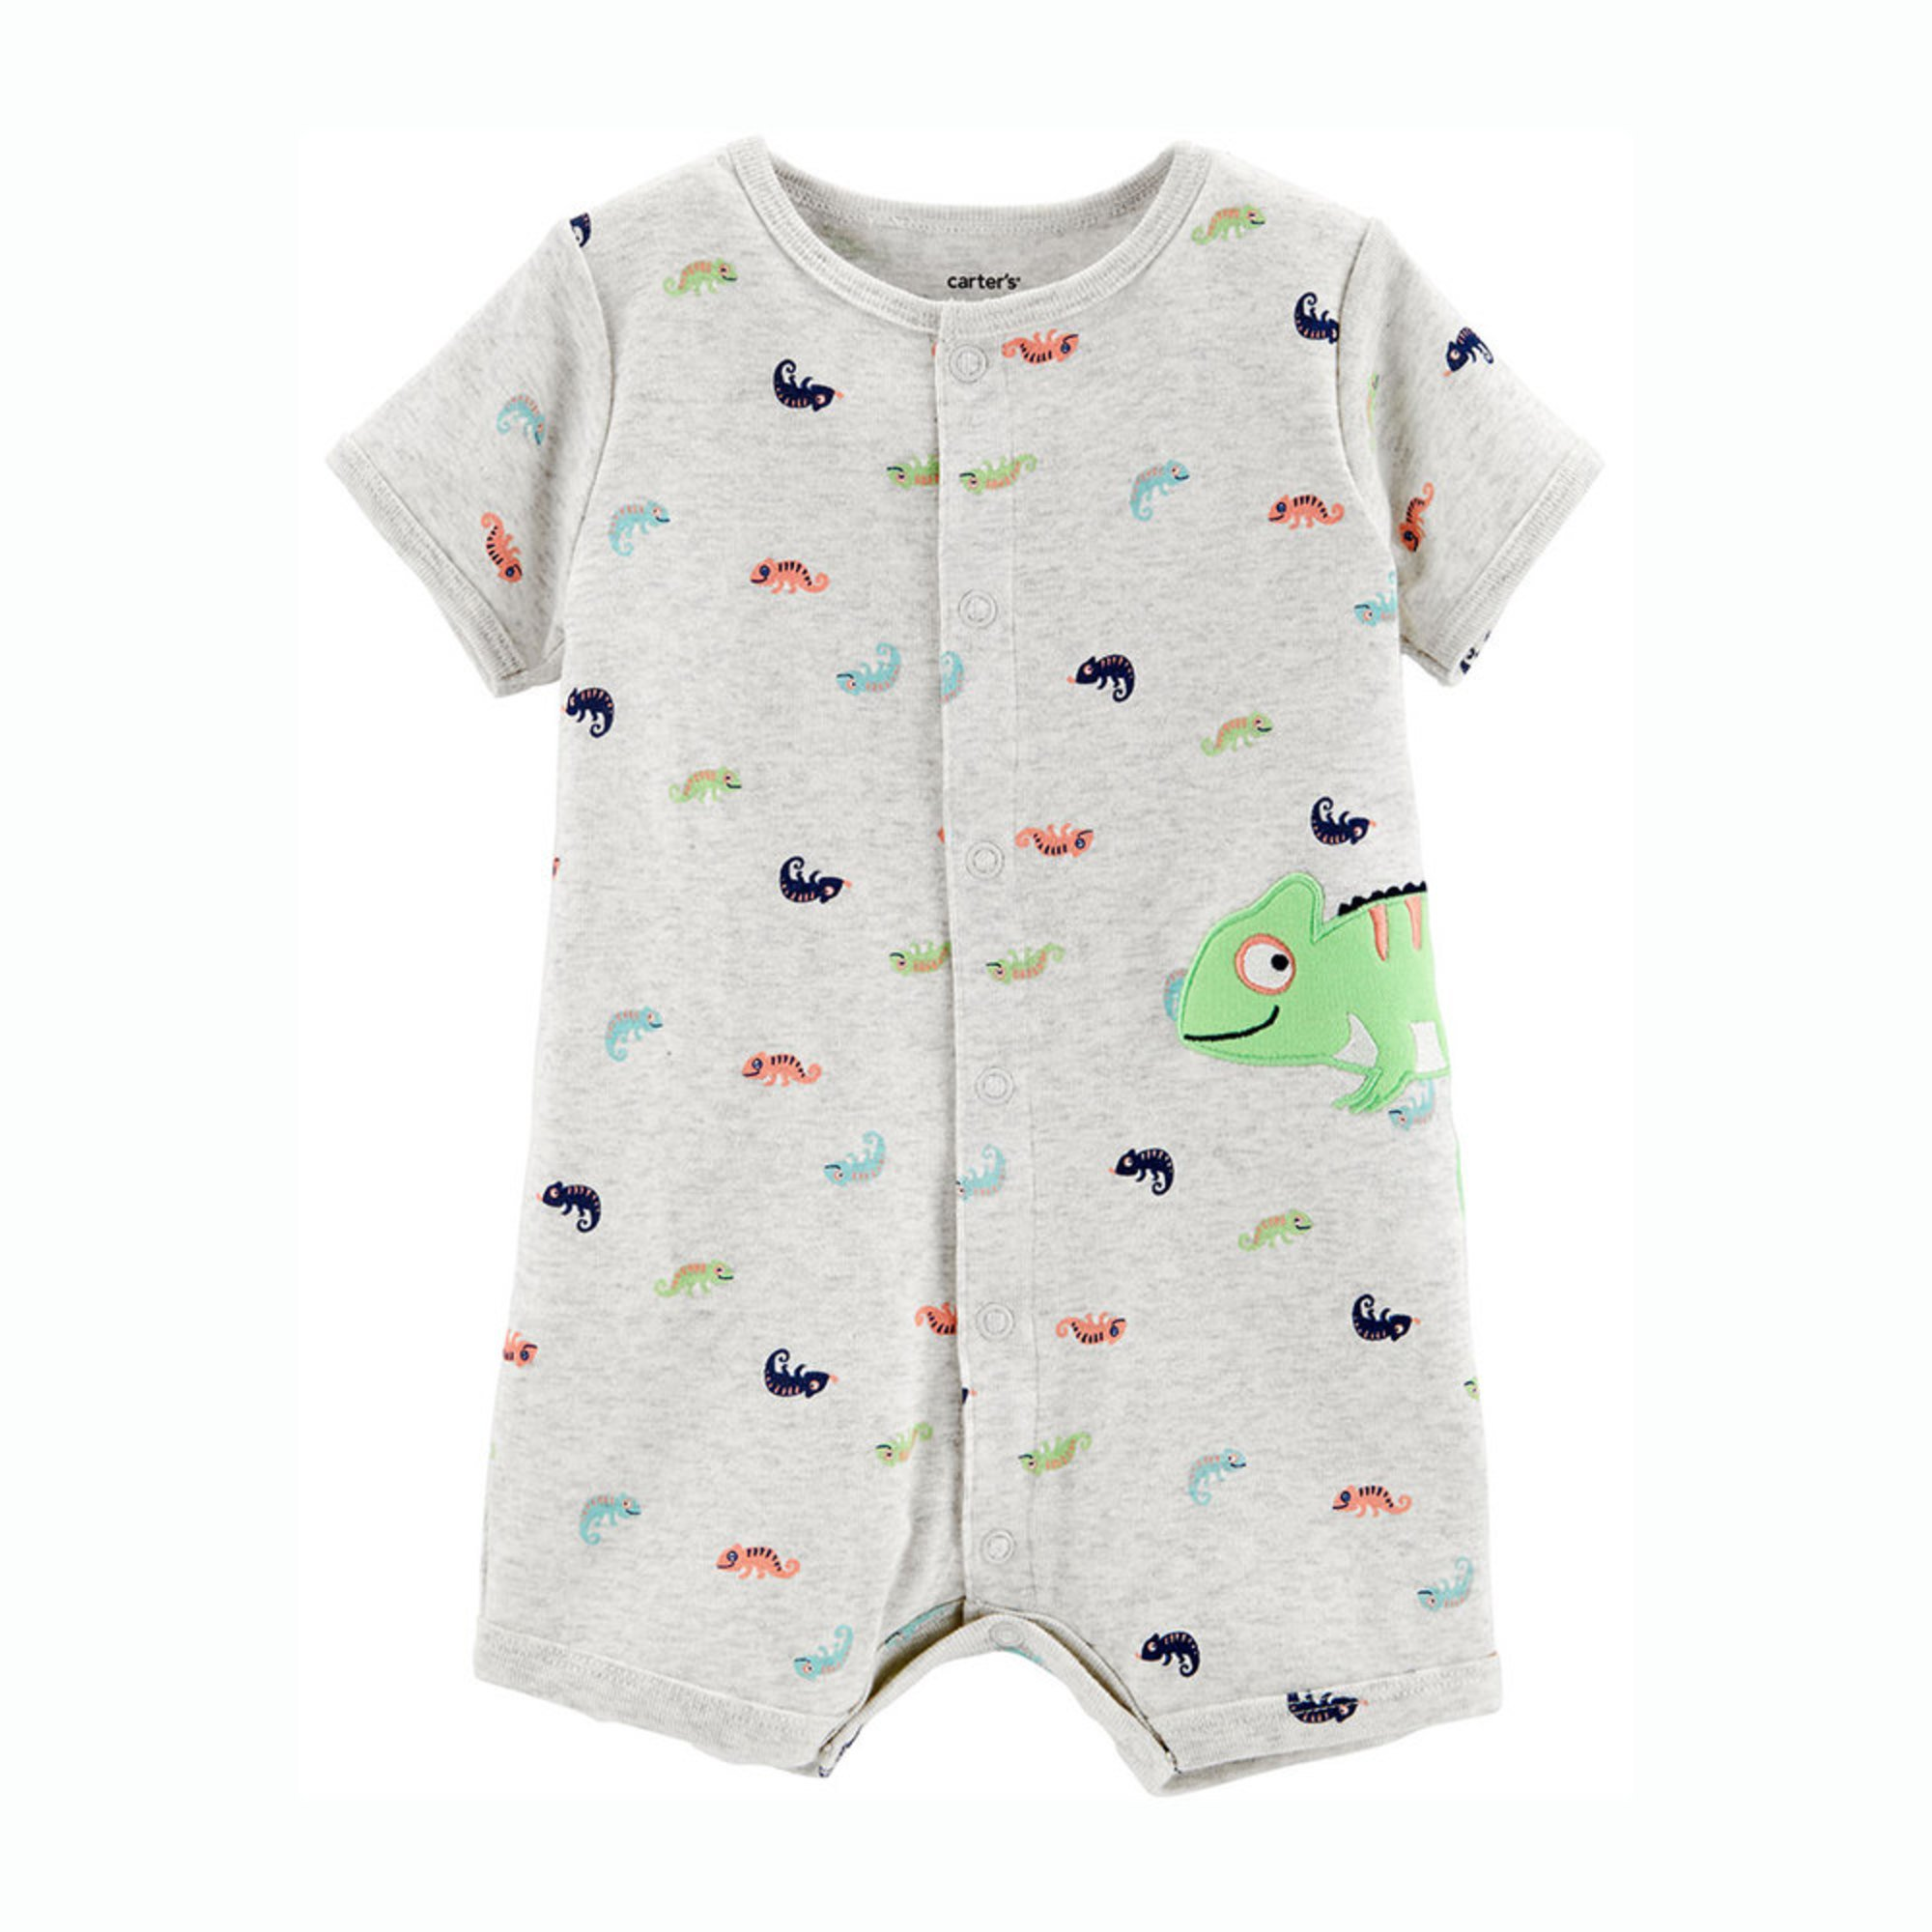 3c8a816ab19ed Carter's Baby Boys' Chameleon Snap Up Romper | Baby Boys' One Piece ...